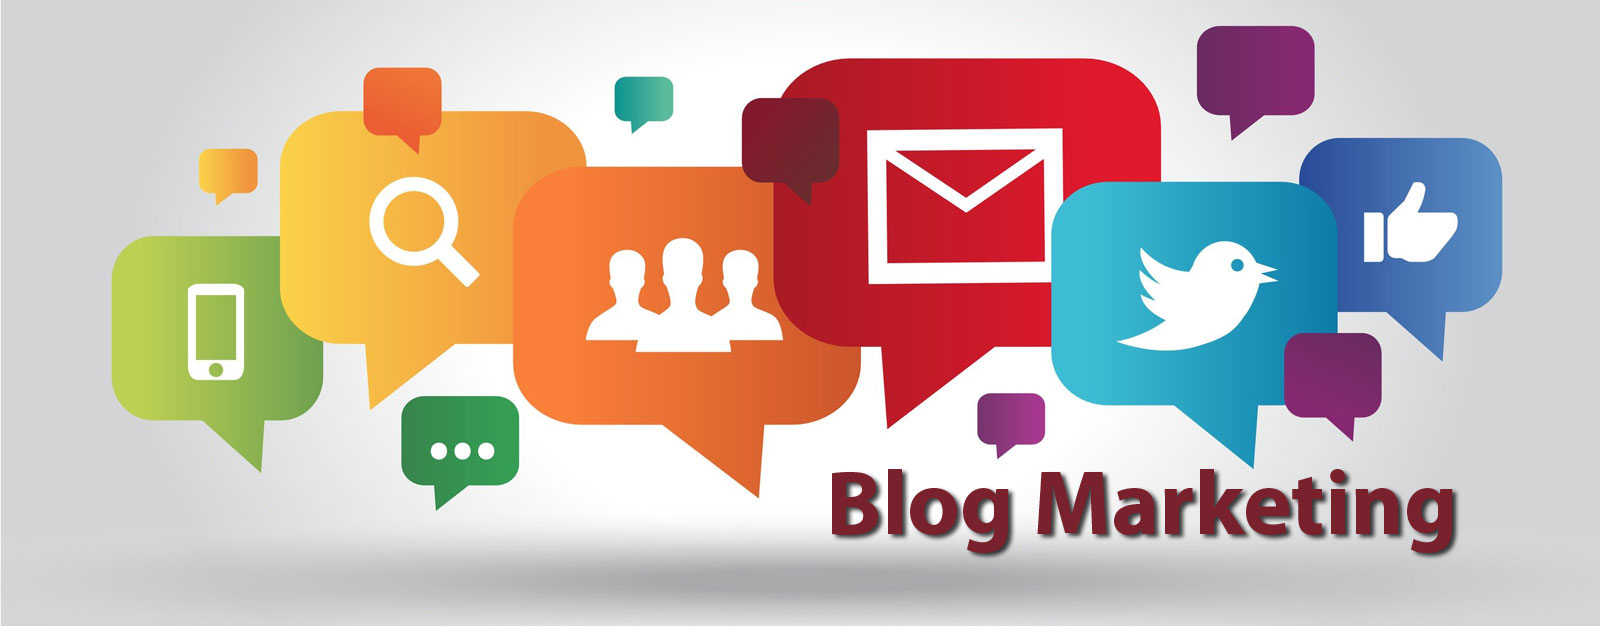 blog marketing for seo